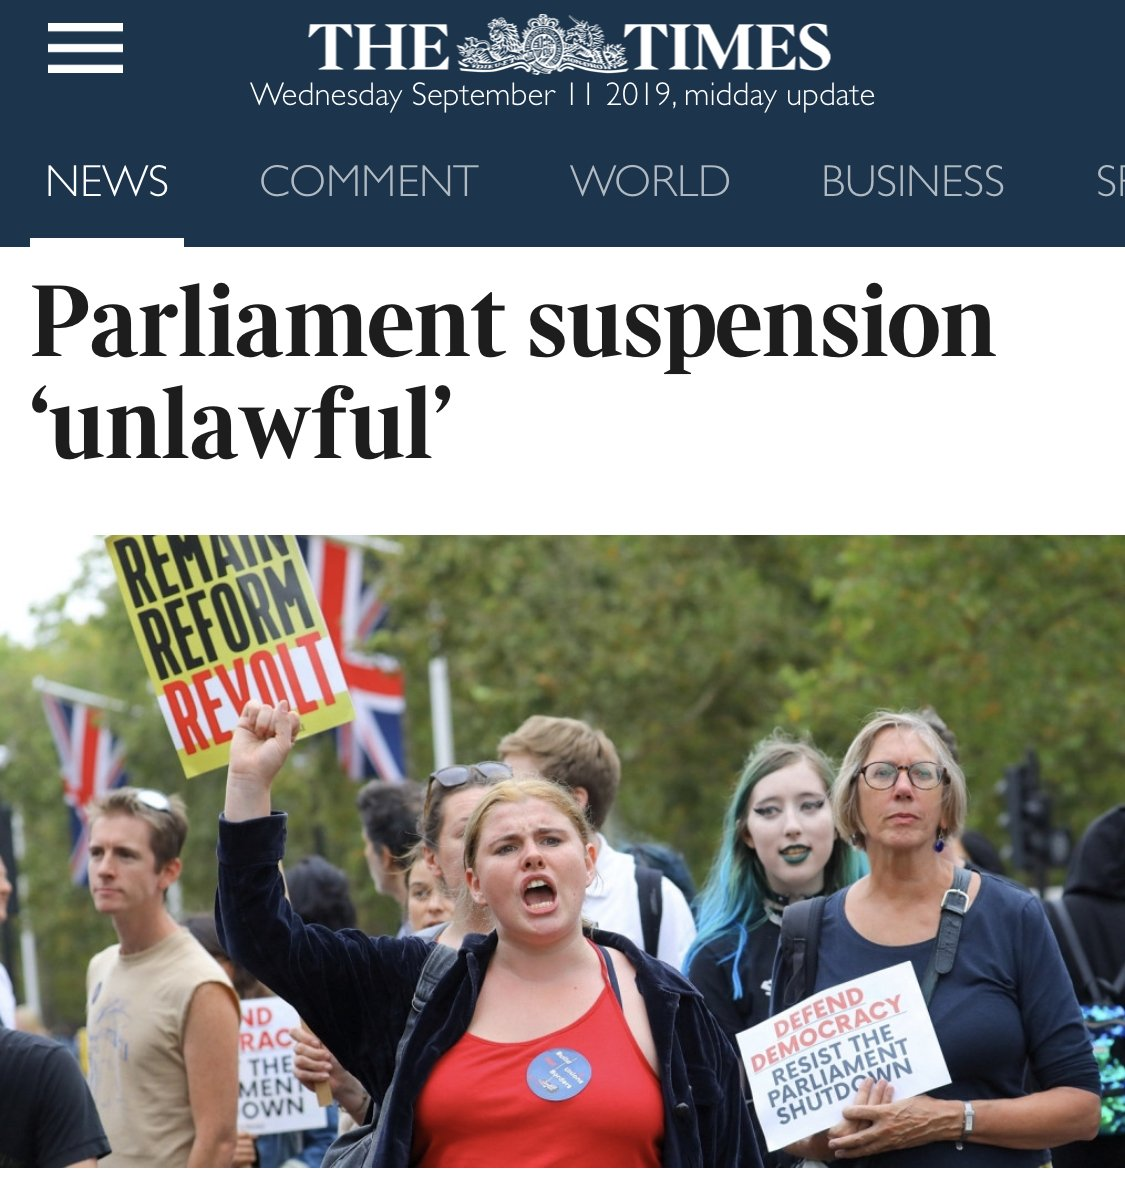 Why the quote marks, @thetimes? It's unlawful. Not 'unlawful'. You need to edit your 'newspaper'.